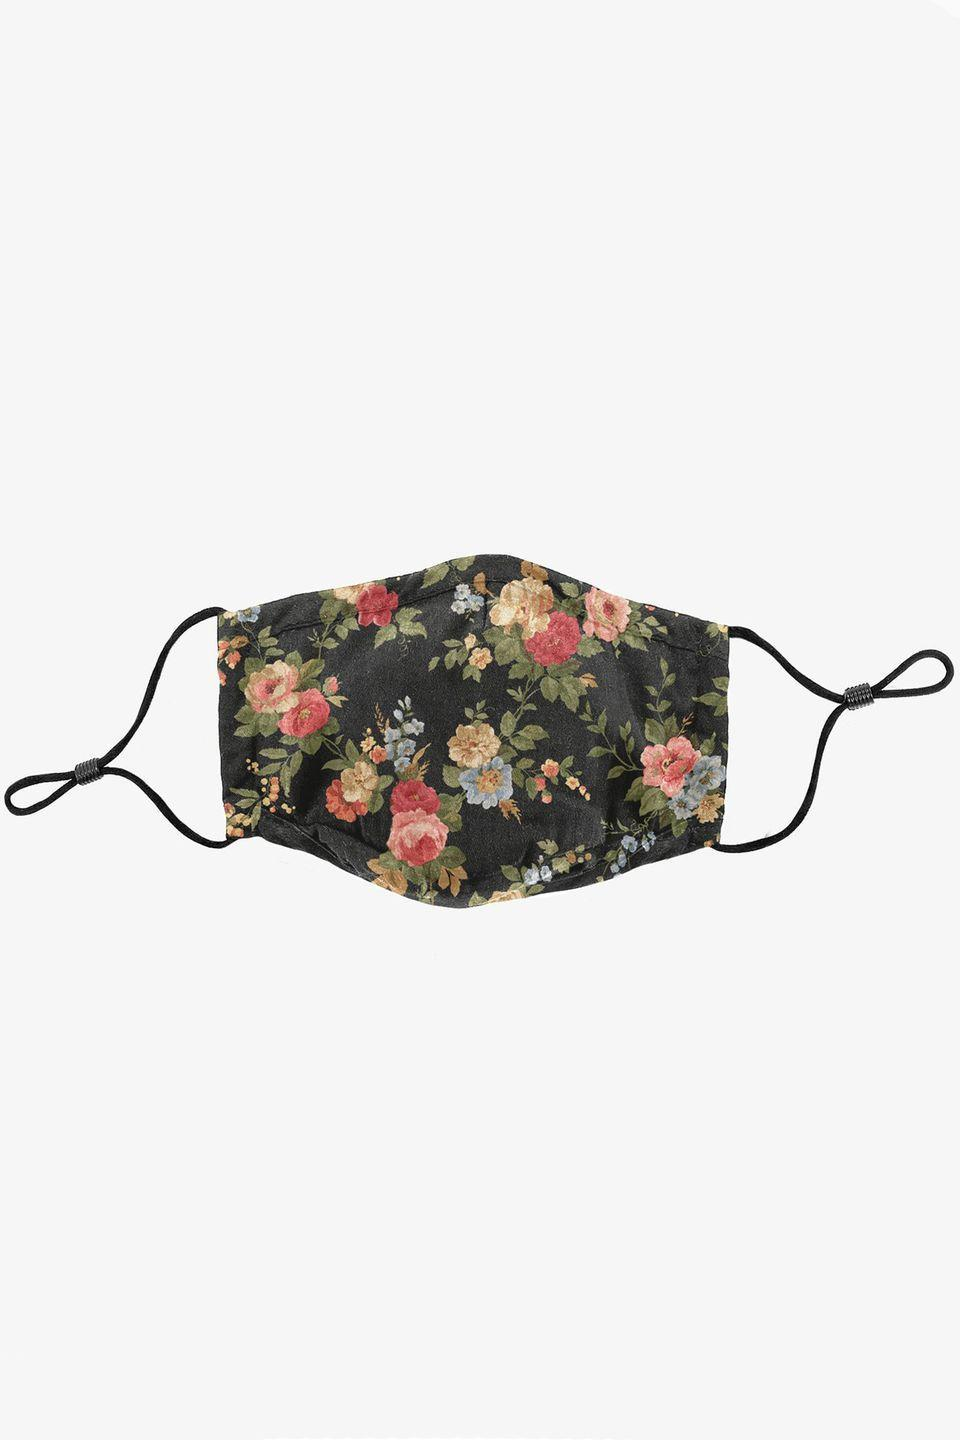 """<p><a class=""""link rapid-noclick-resp"""" href=""""https://profoundco.com/collections/masks/products/triple-layered-protective-black-floral-print-face-mask"""" rel=""""nofollow noopener"""" target=""""_blank"""" data-ylk=""""slk:SHOP NOW"""">SHOP NOW</a></p><p>With each Profound mask sale, a portion of proceeds will be donated to the International Rescue Organisation, which works to assist Refugee families in overpopulated areas. Further donations to funds that assist healthcare workers in local areas of New York and New Jersey will be donated, as well as a portion of proceeds being donated towards factory facilities that opened its doors for the production of these masks, as sewers, pattern makers and workers that continue to put themselves at risk every day. <br></p><p>£22, <a href=""""https://profoundco.com/collections/masks/products/triple-layered-protective-black-floral-print-face-mask"""" rel=""""nofollow noopener"""" target=""""_blank"""" data-ylk=""""slk:Profound"""" class=""""link rapid-noclick-resp"""">Profound </a></p>"""